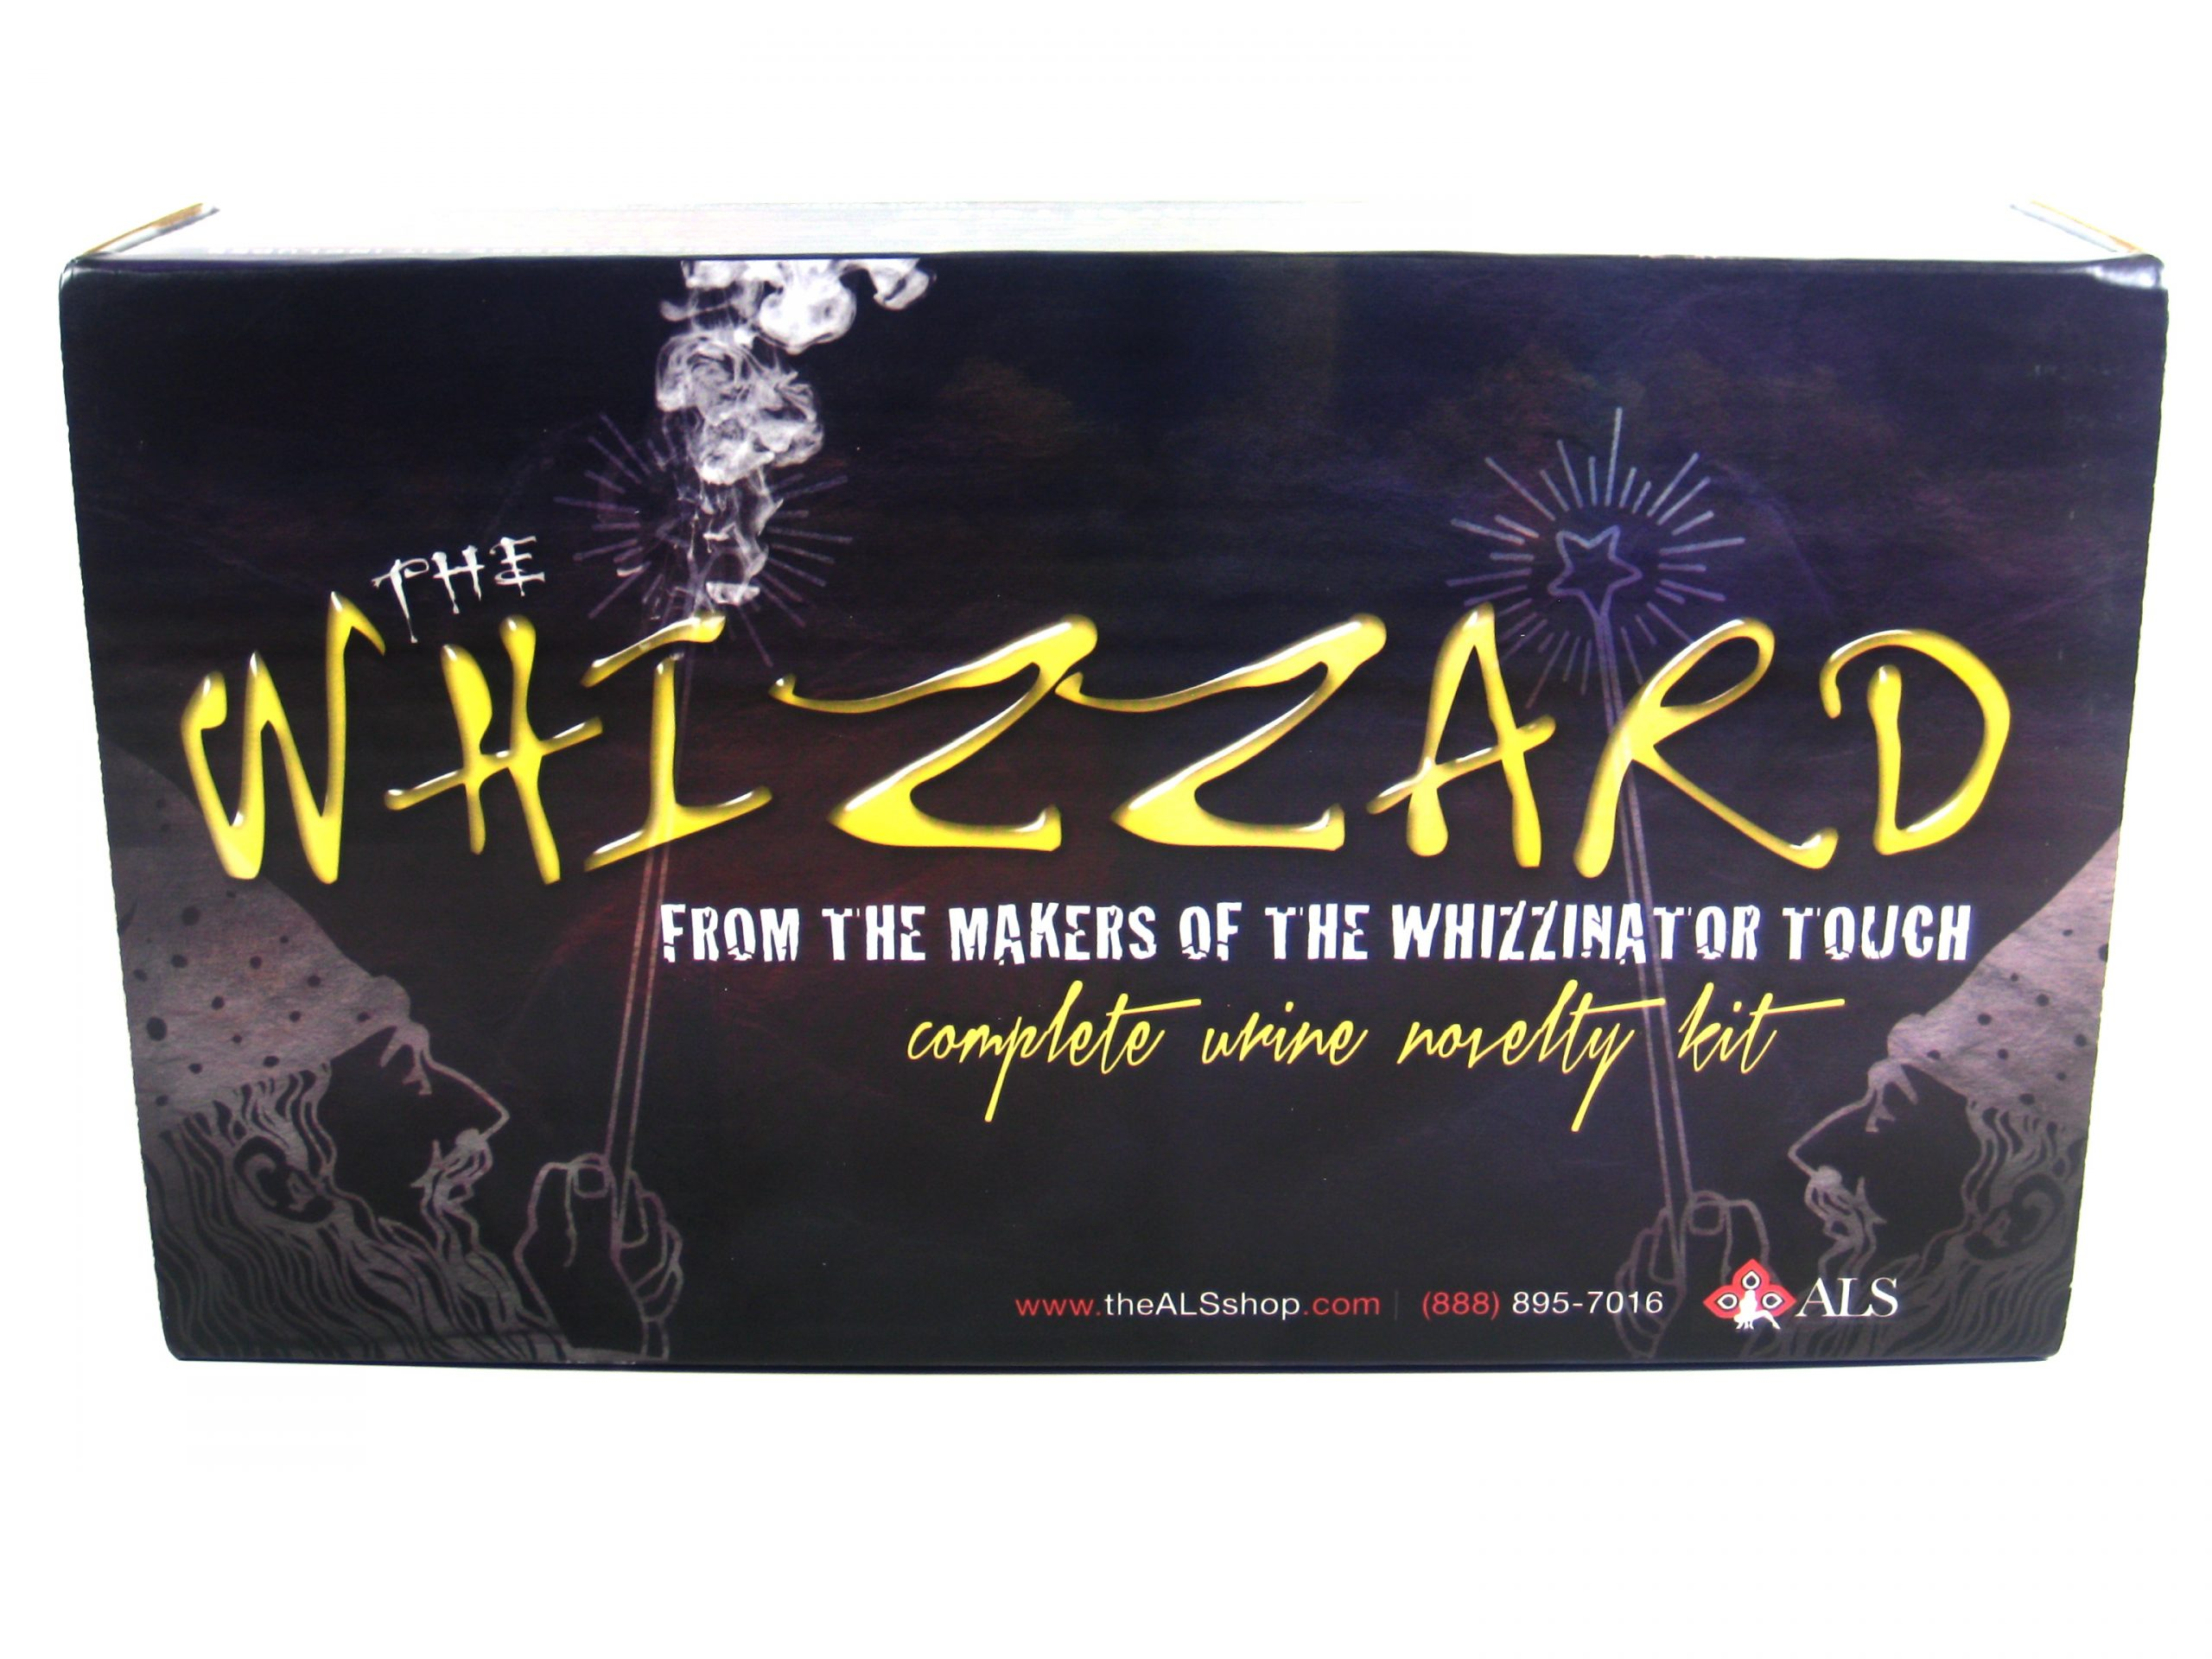 The Whizzard Synthetic Urine Kit